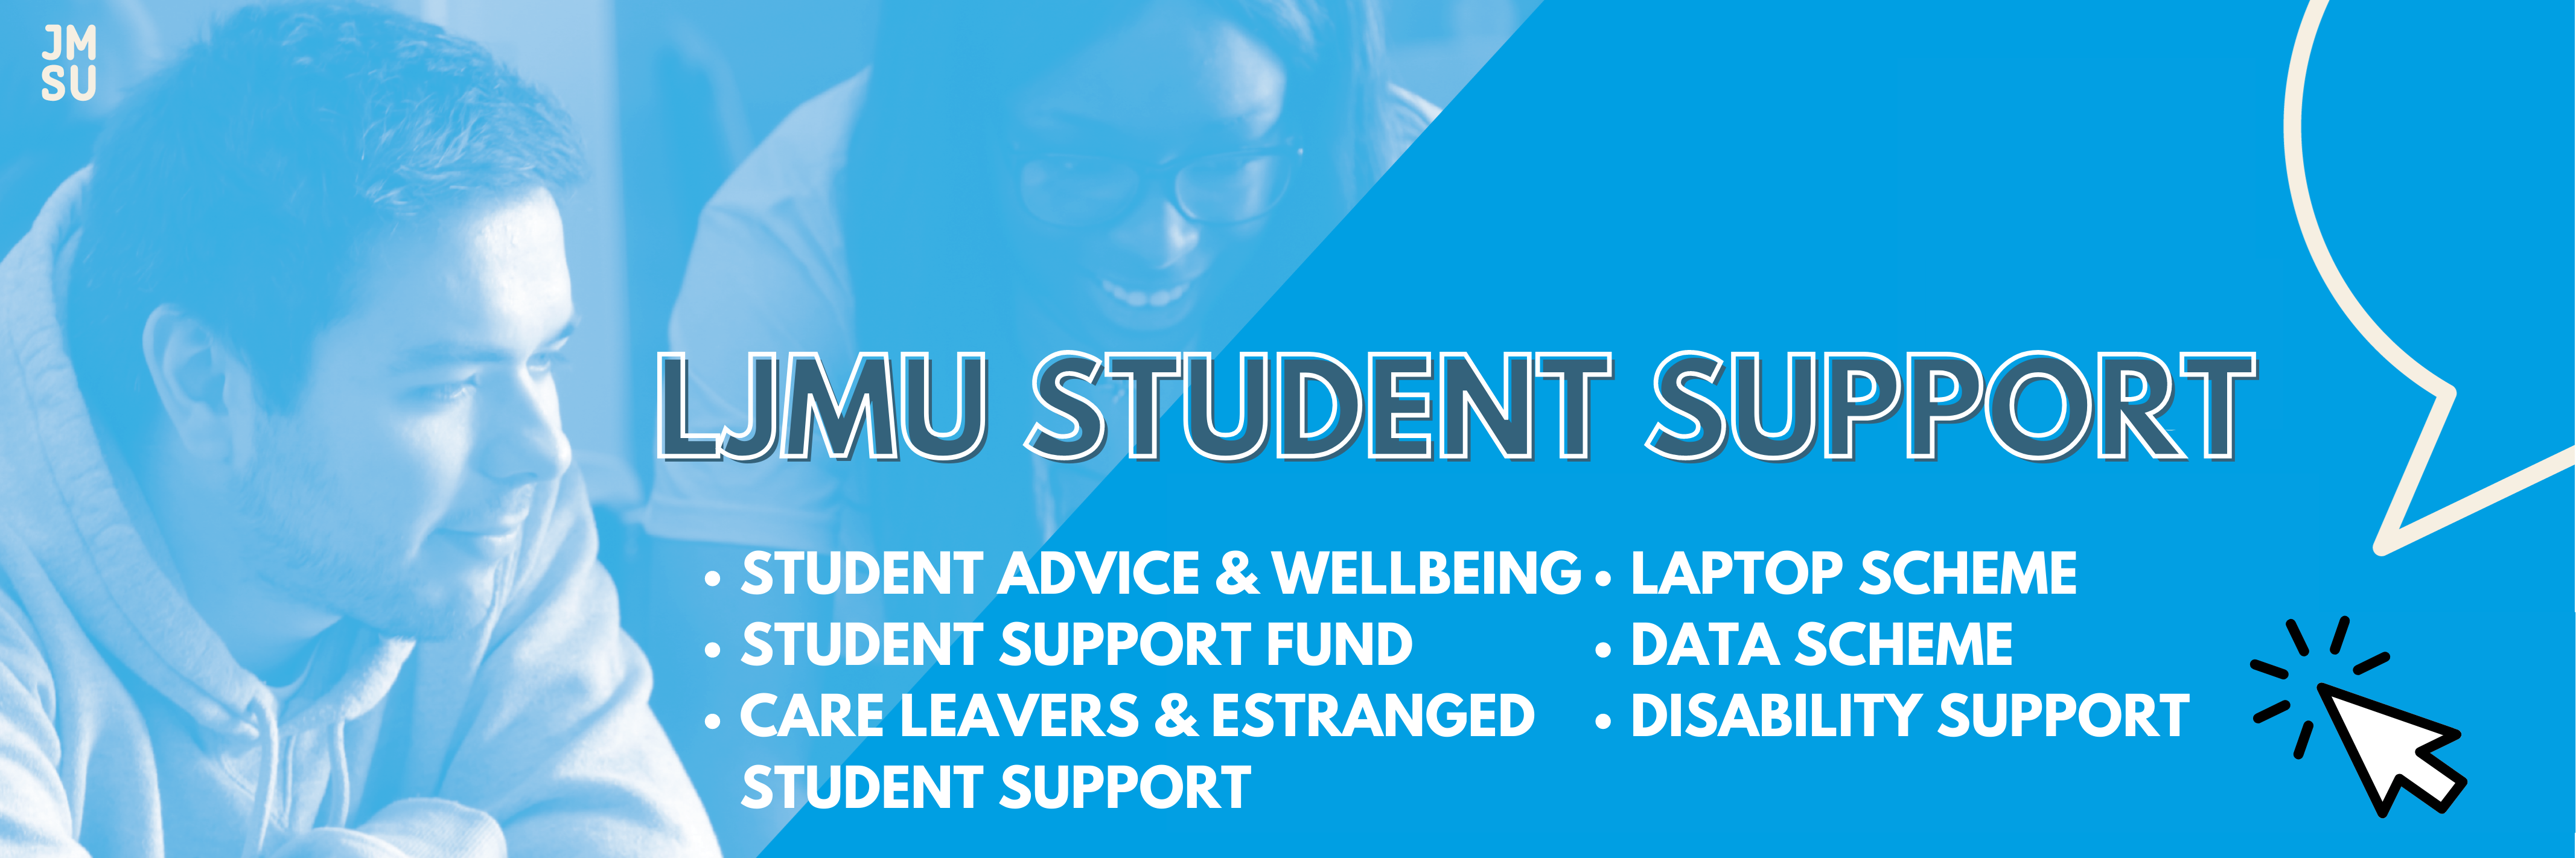 Student support copy